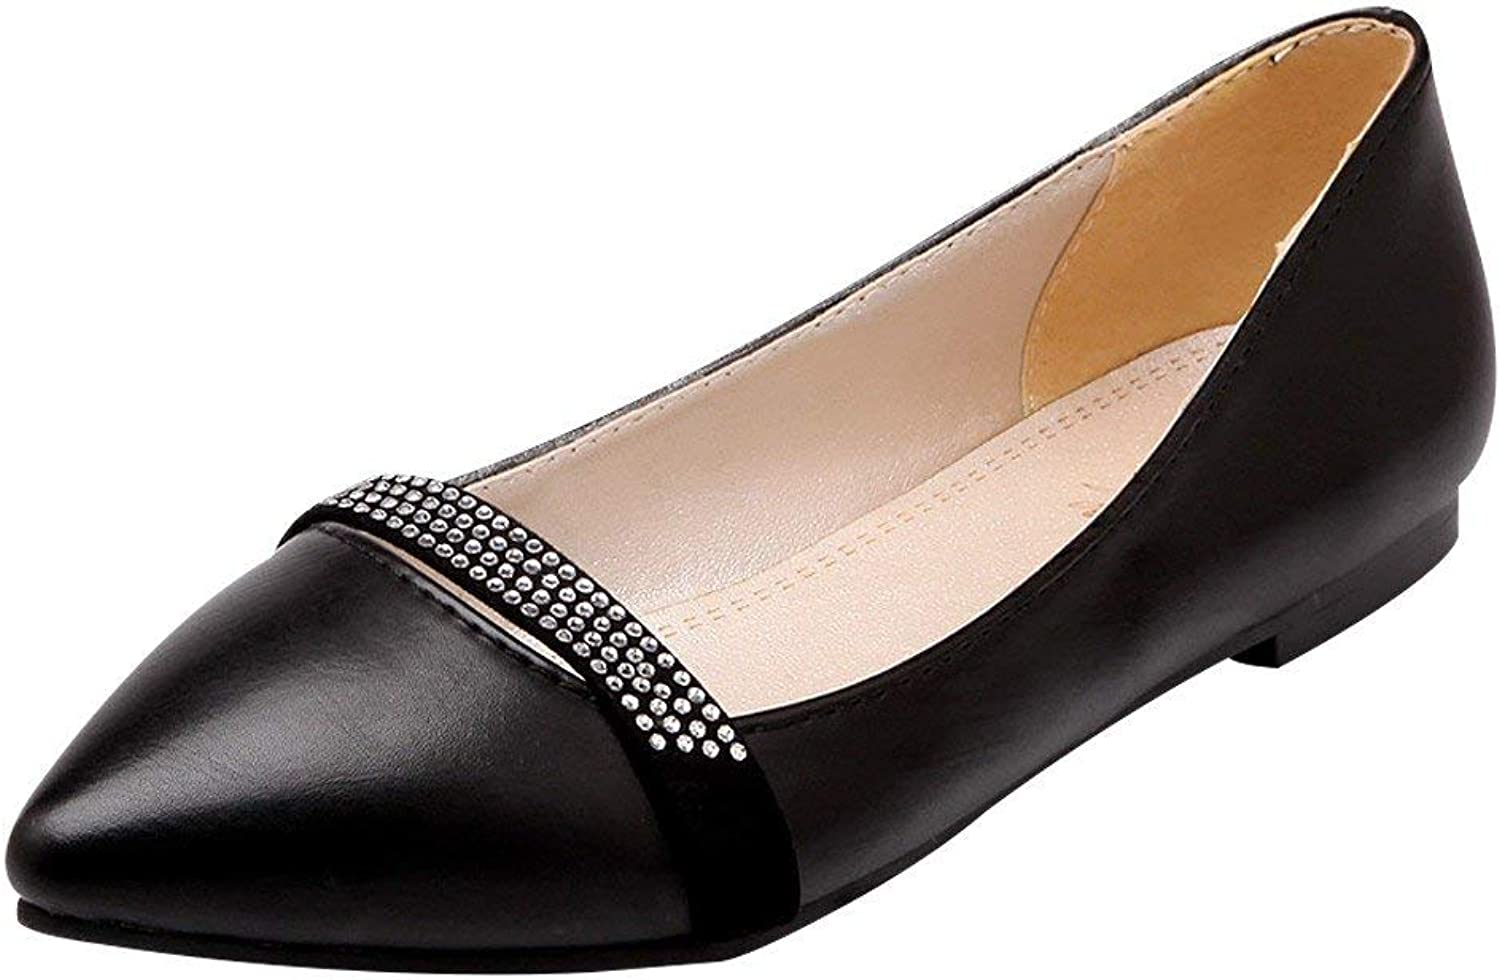 Lelehwhge Women's Casual Pointed Toe Sequins Flat Pumps shoes Black 5 M US